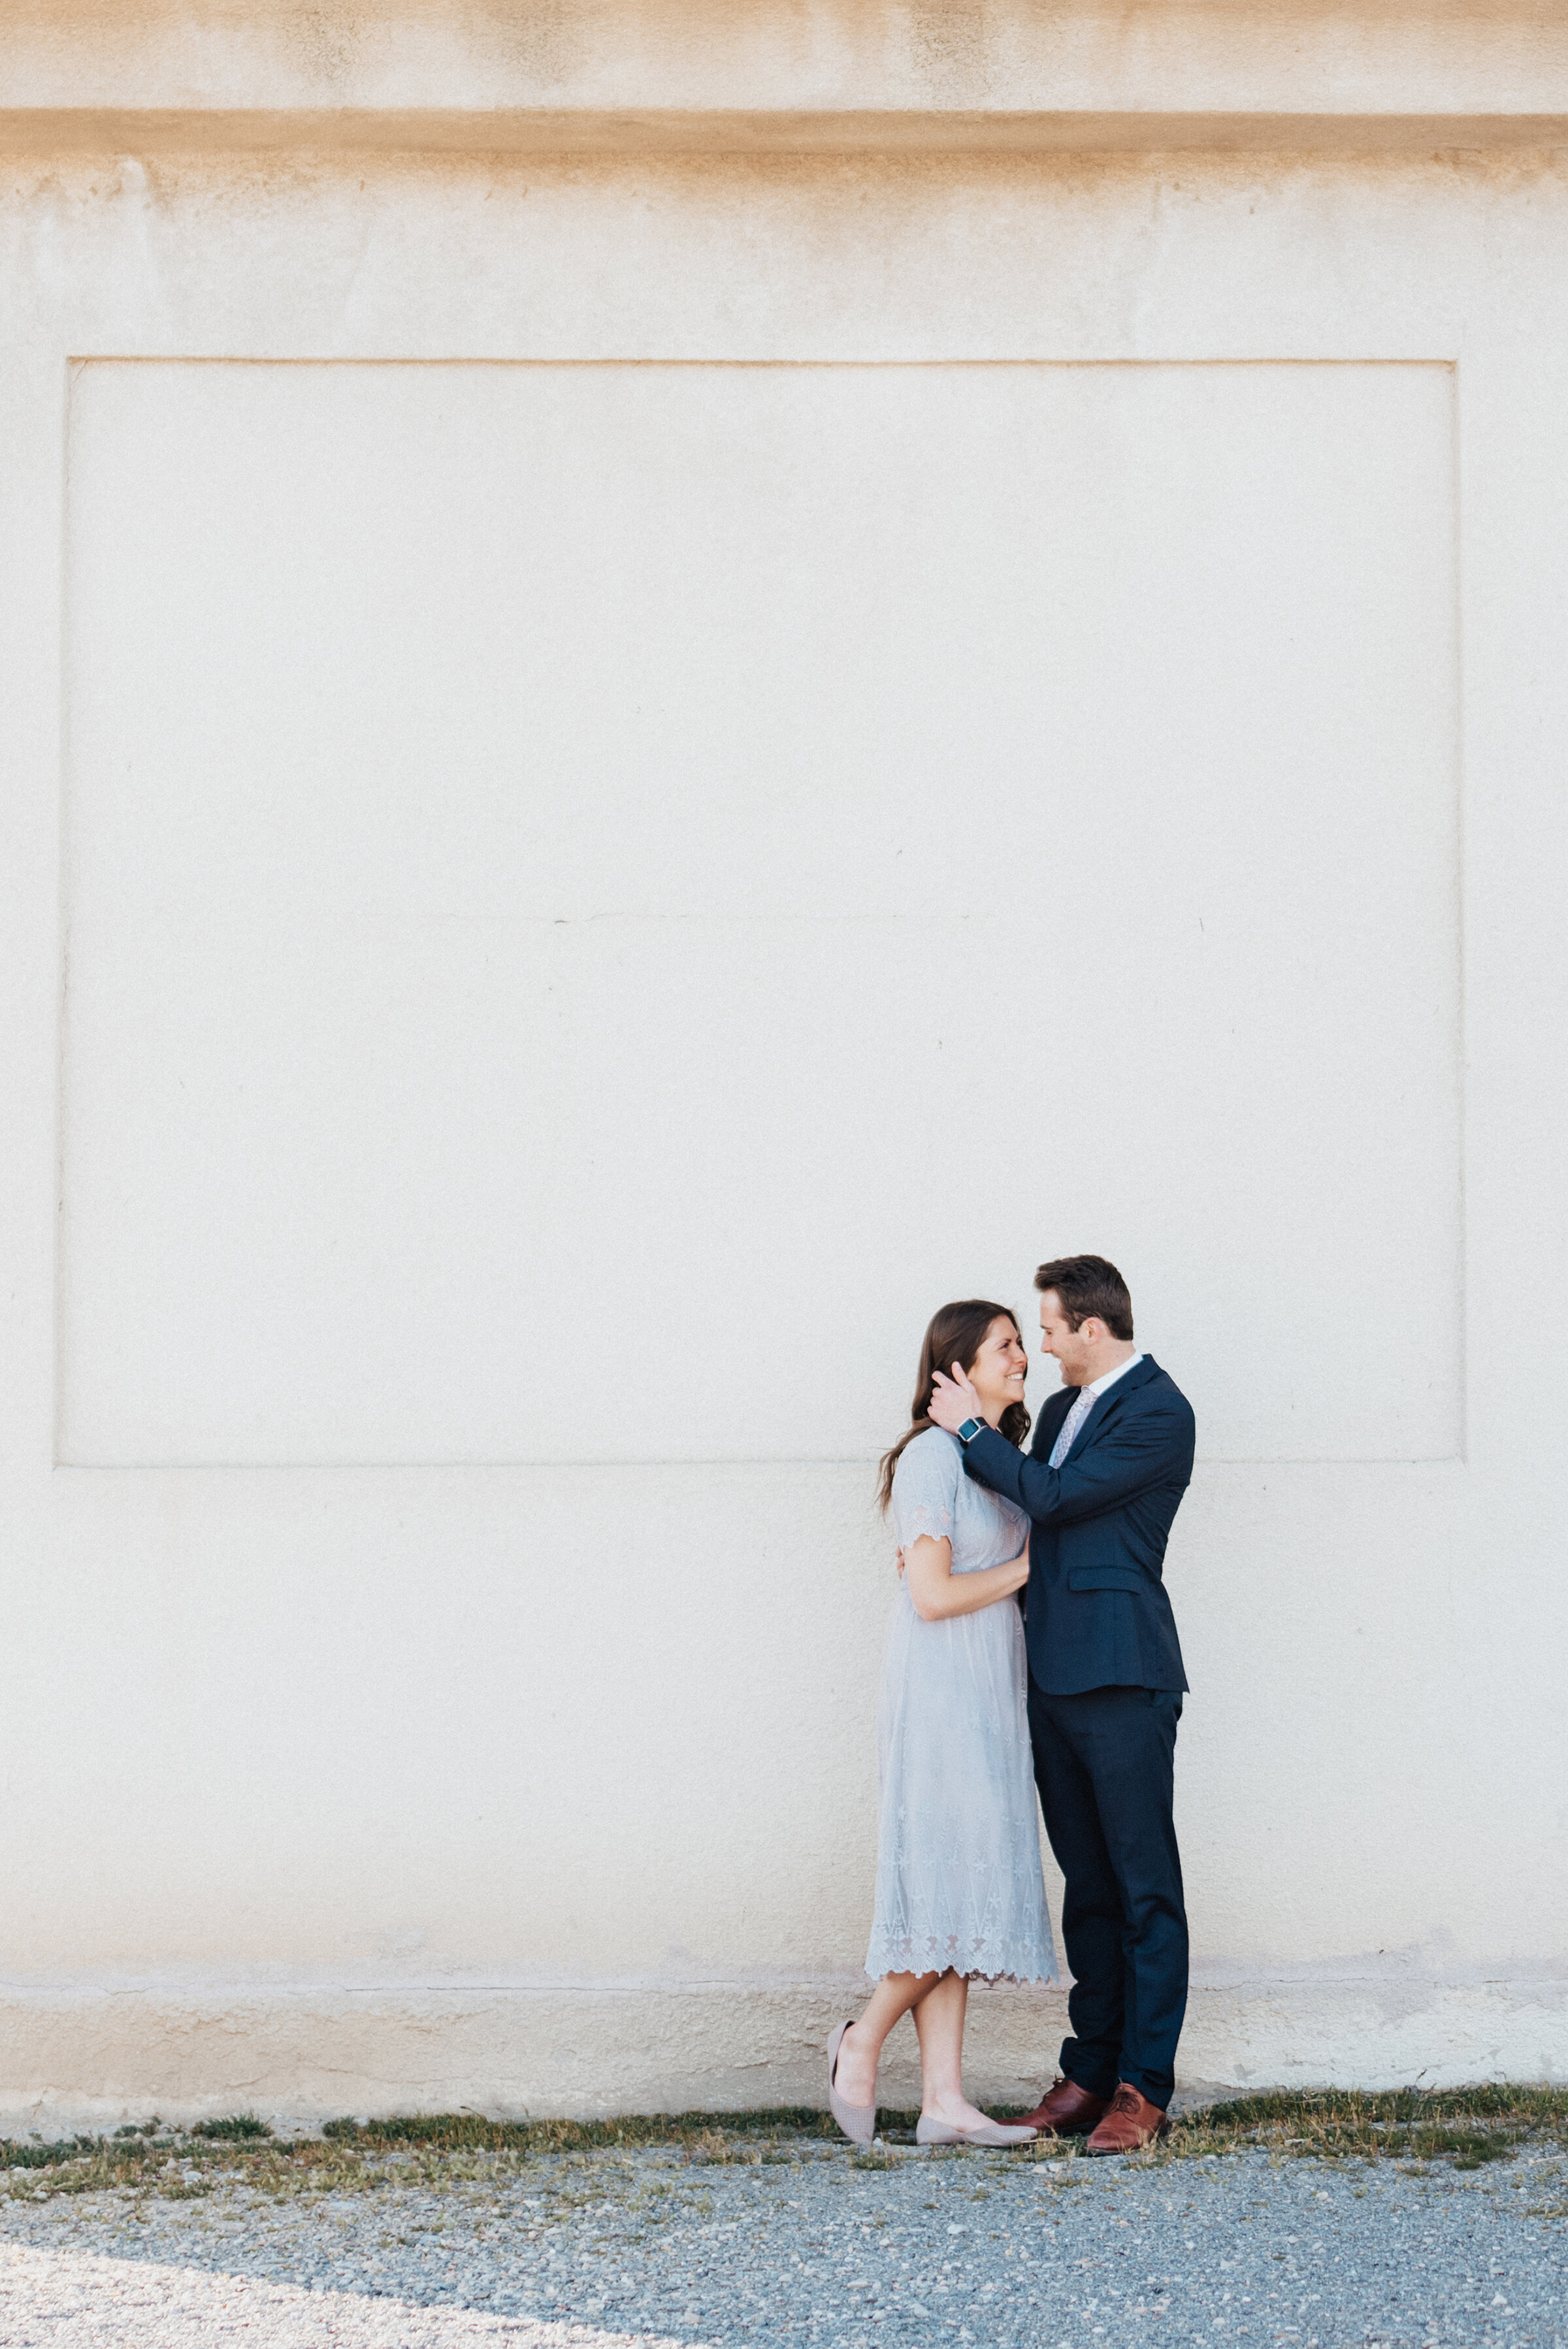 Beautiful matching couple pose in front of a large textured wall during their utah engagement photoshoot session with Kristi Alyse Photography. Utah's best photographer family photography gray lace dress outfit ideas for engagements utah engagement photoshoot Kristi Alyse photography session #kristialysephotos #engagementideas #utahengagements #outfitideas #matchingcouples #dresstoimpress #photographyinspo #texturedphotos